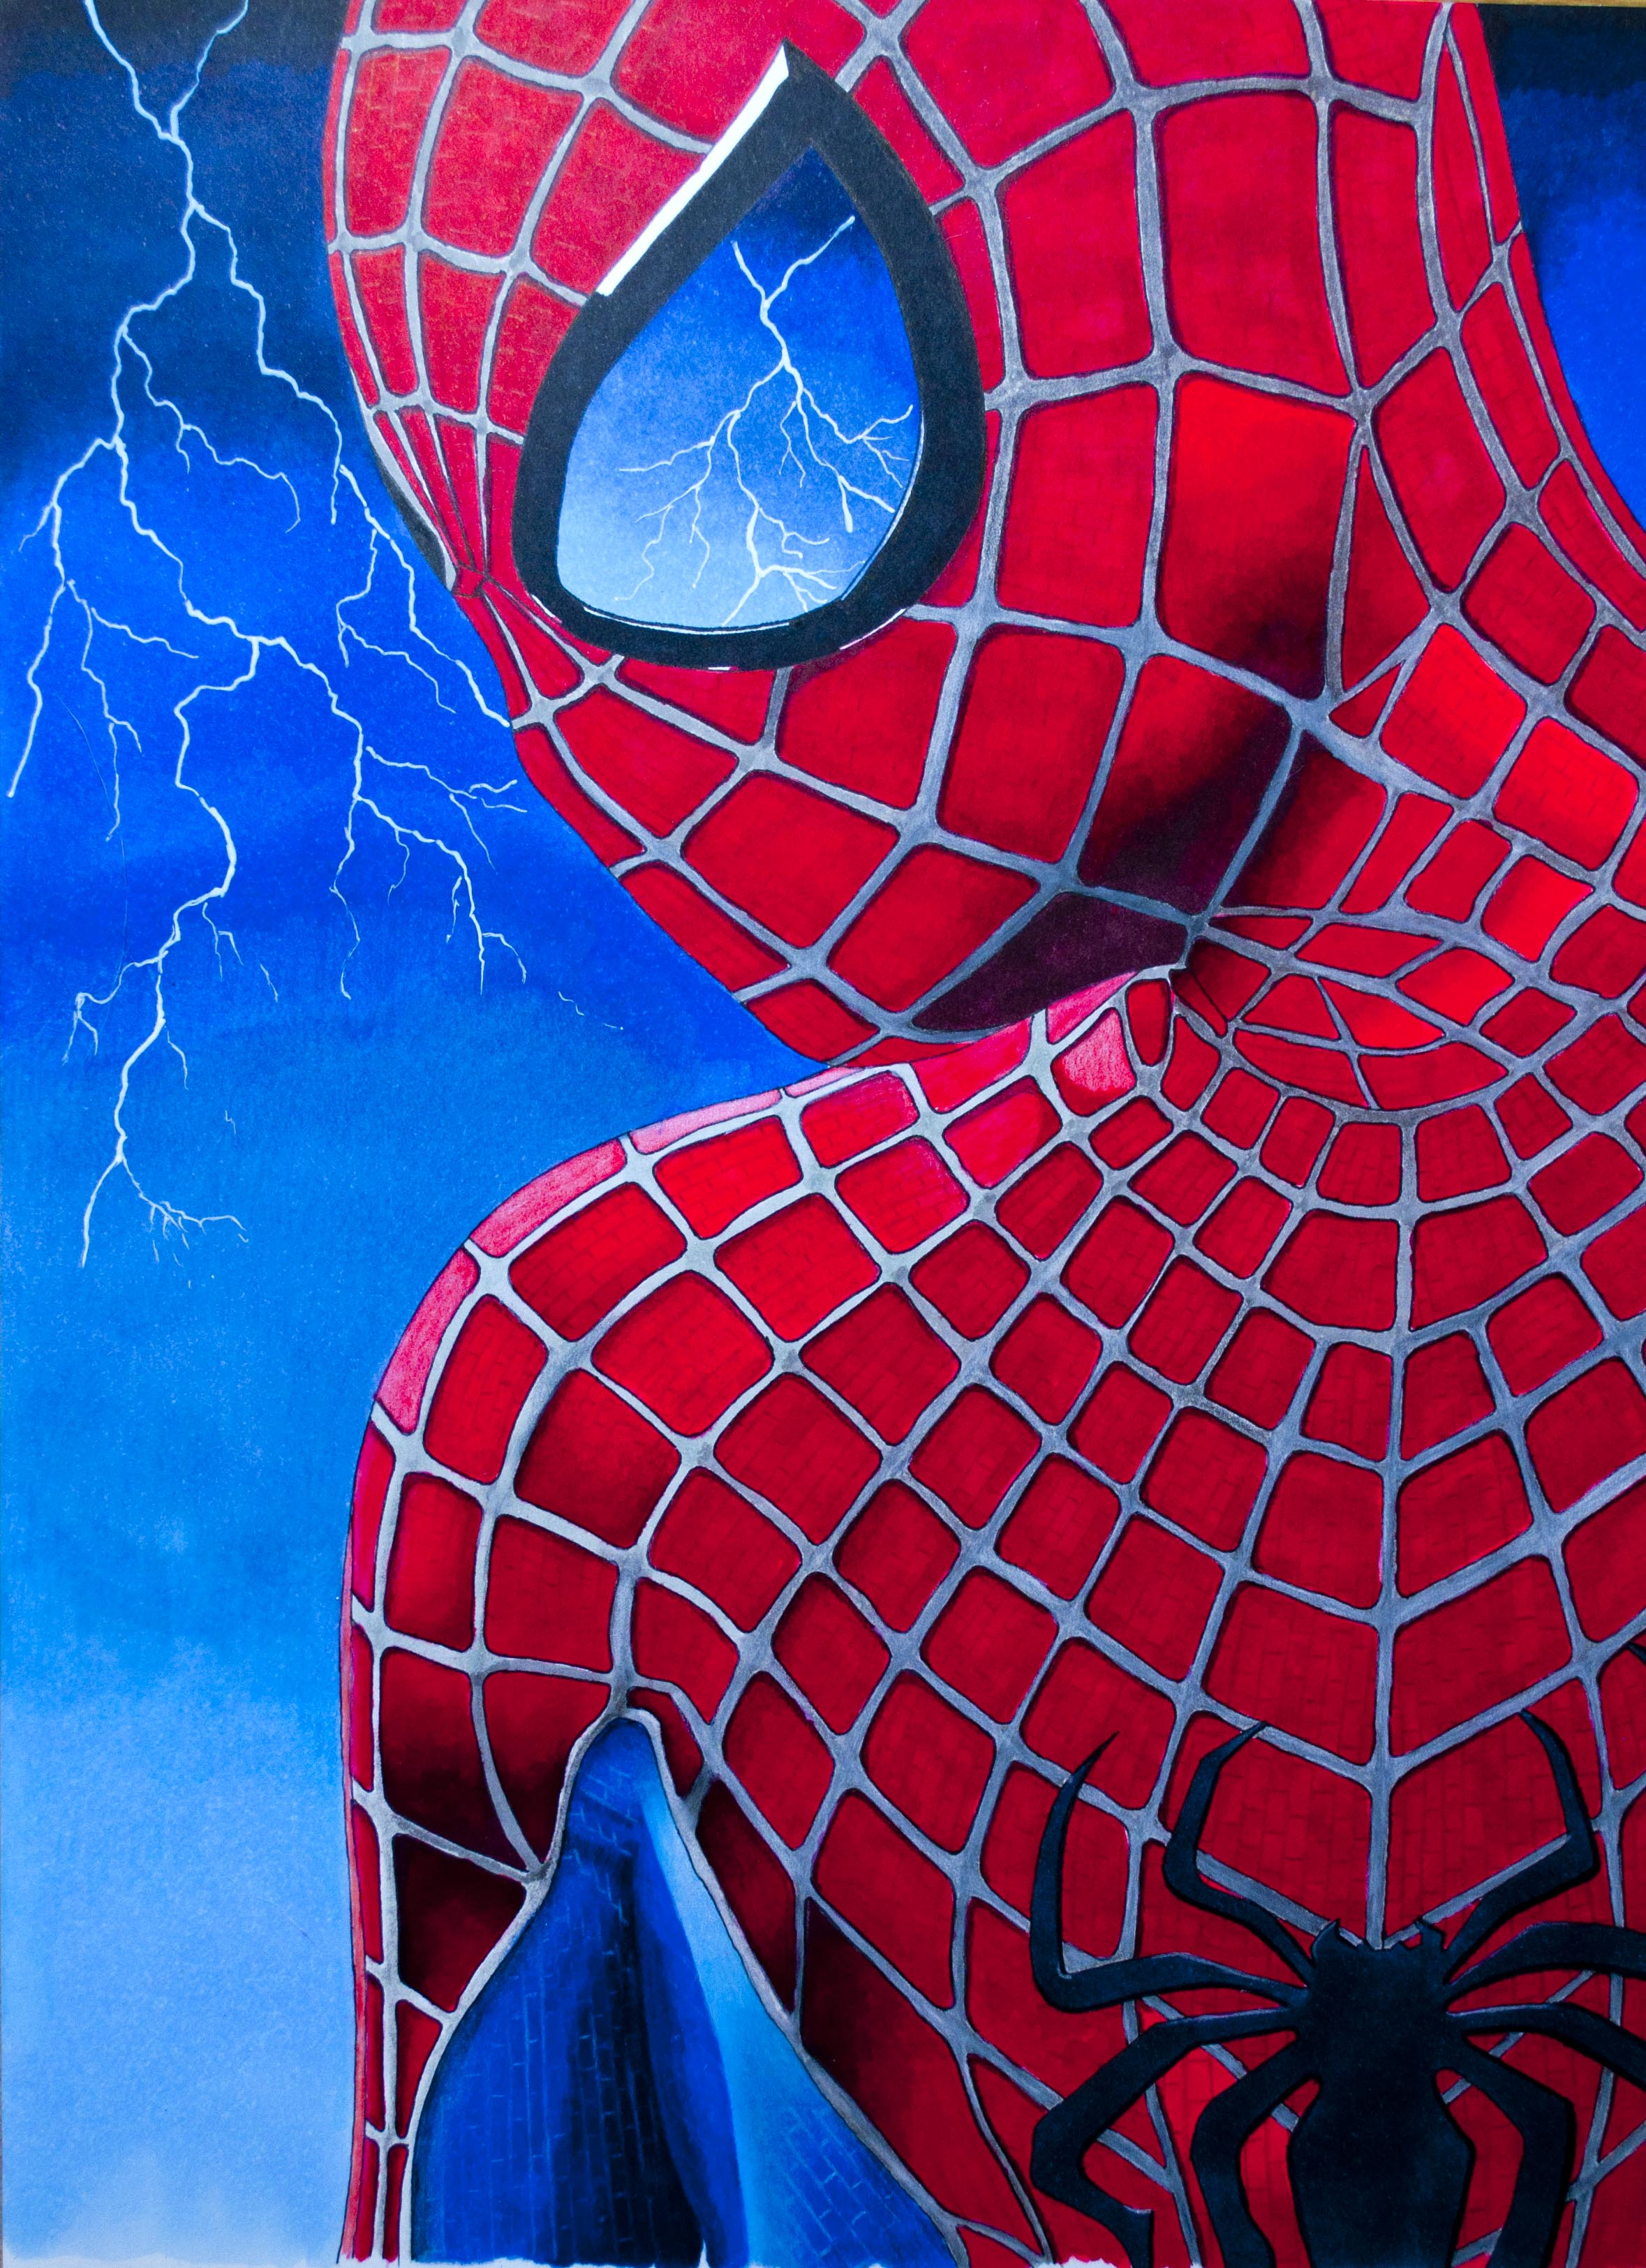 Spiderman Final Image